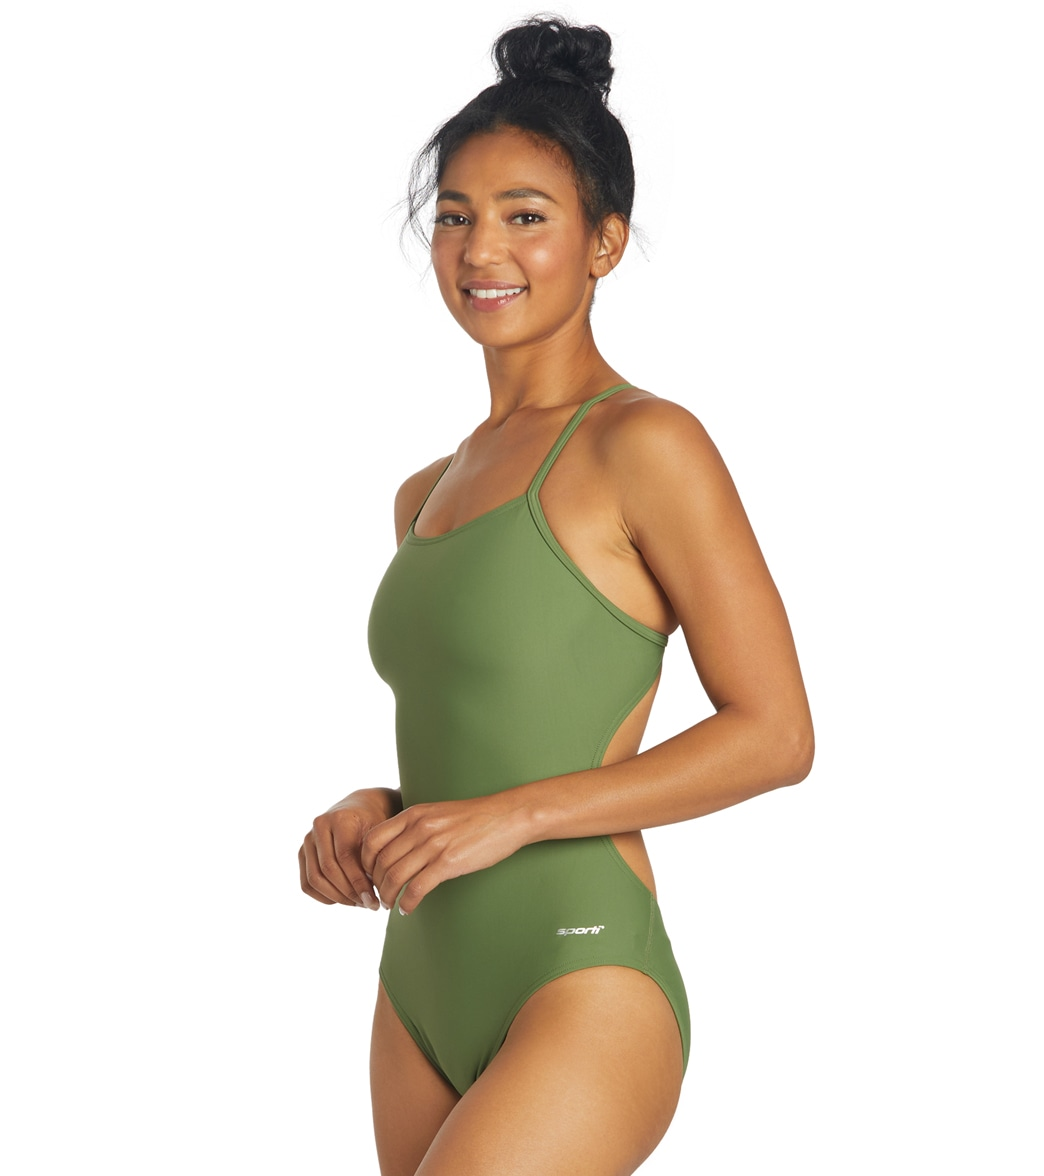 c0fb7205aae89 Sporti Micro Back One Piece Swimsuit at SwimOutlet.com